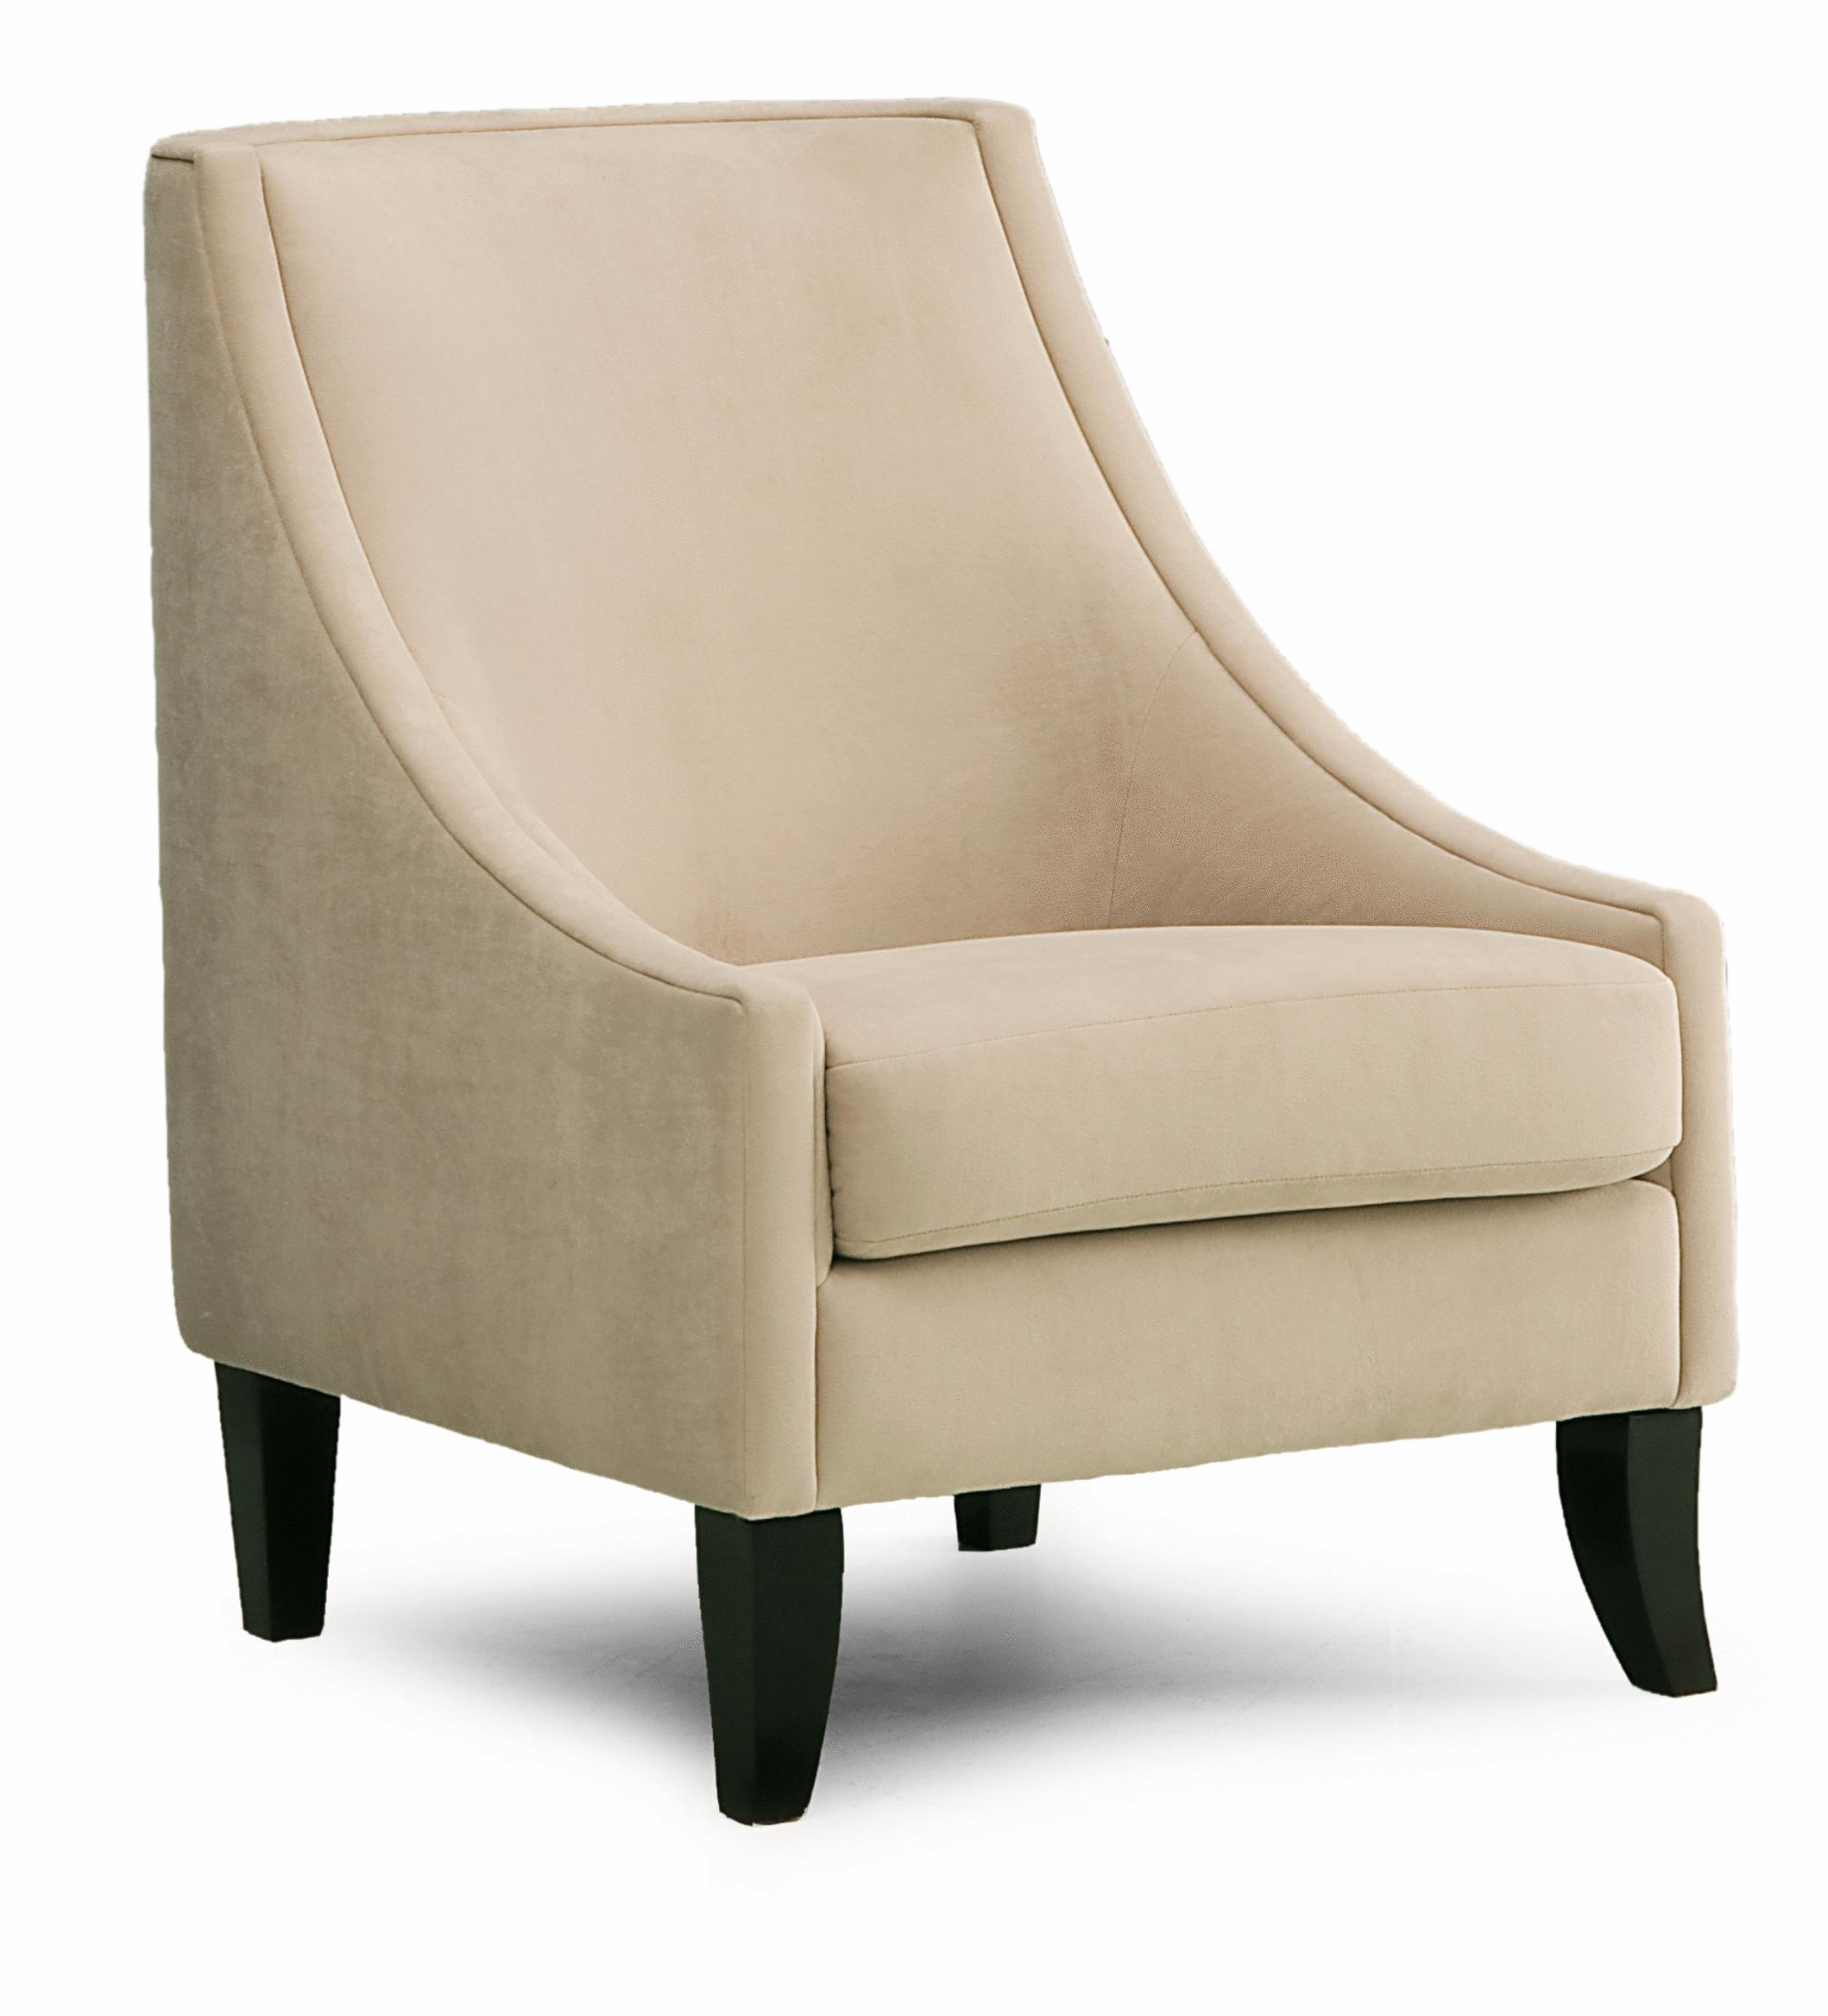 Palliser Theia Contemporary Accent Chair With Low Profile